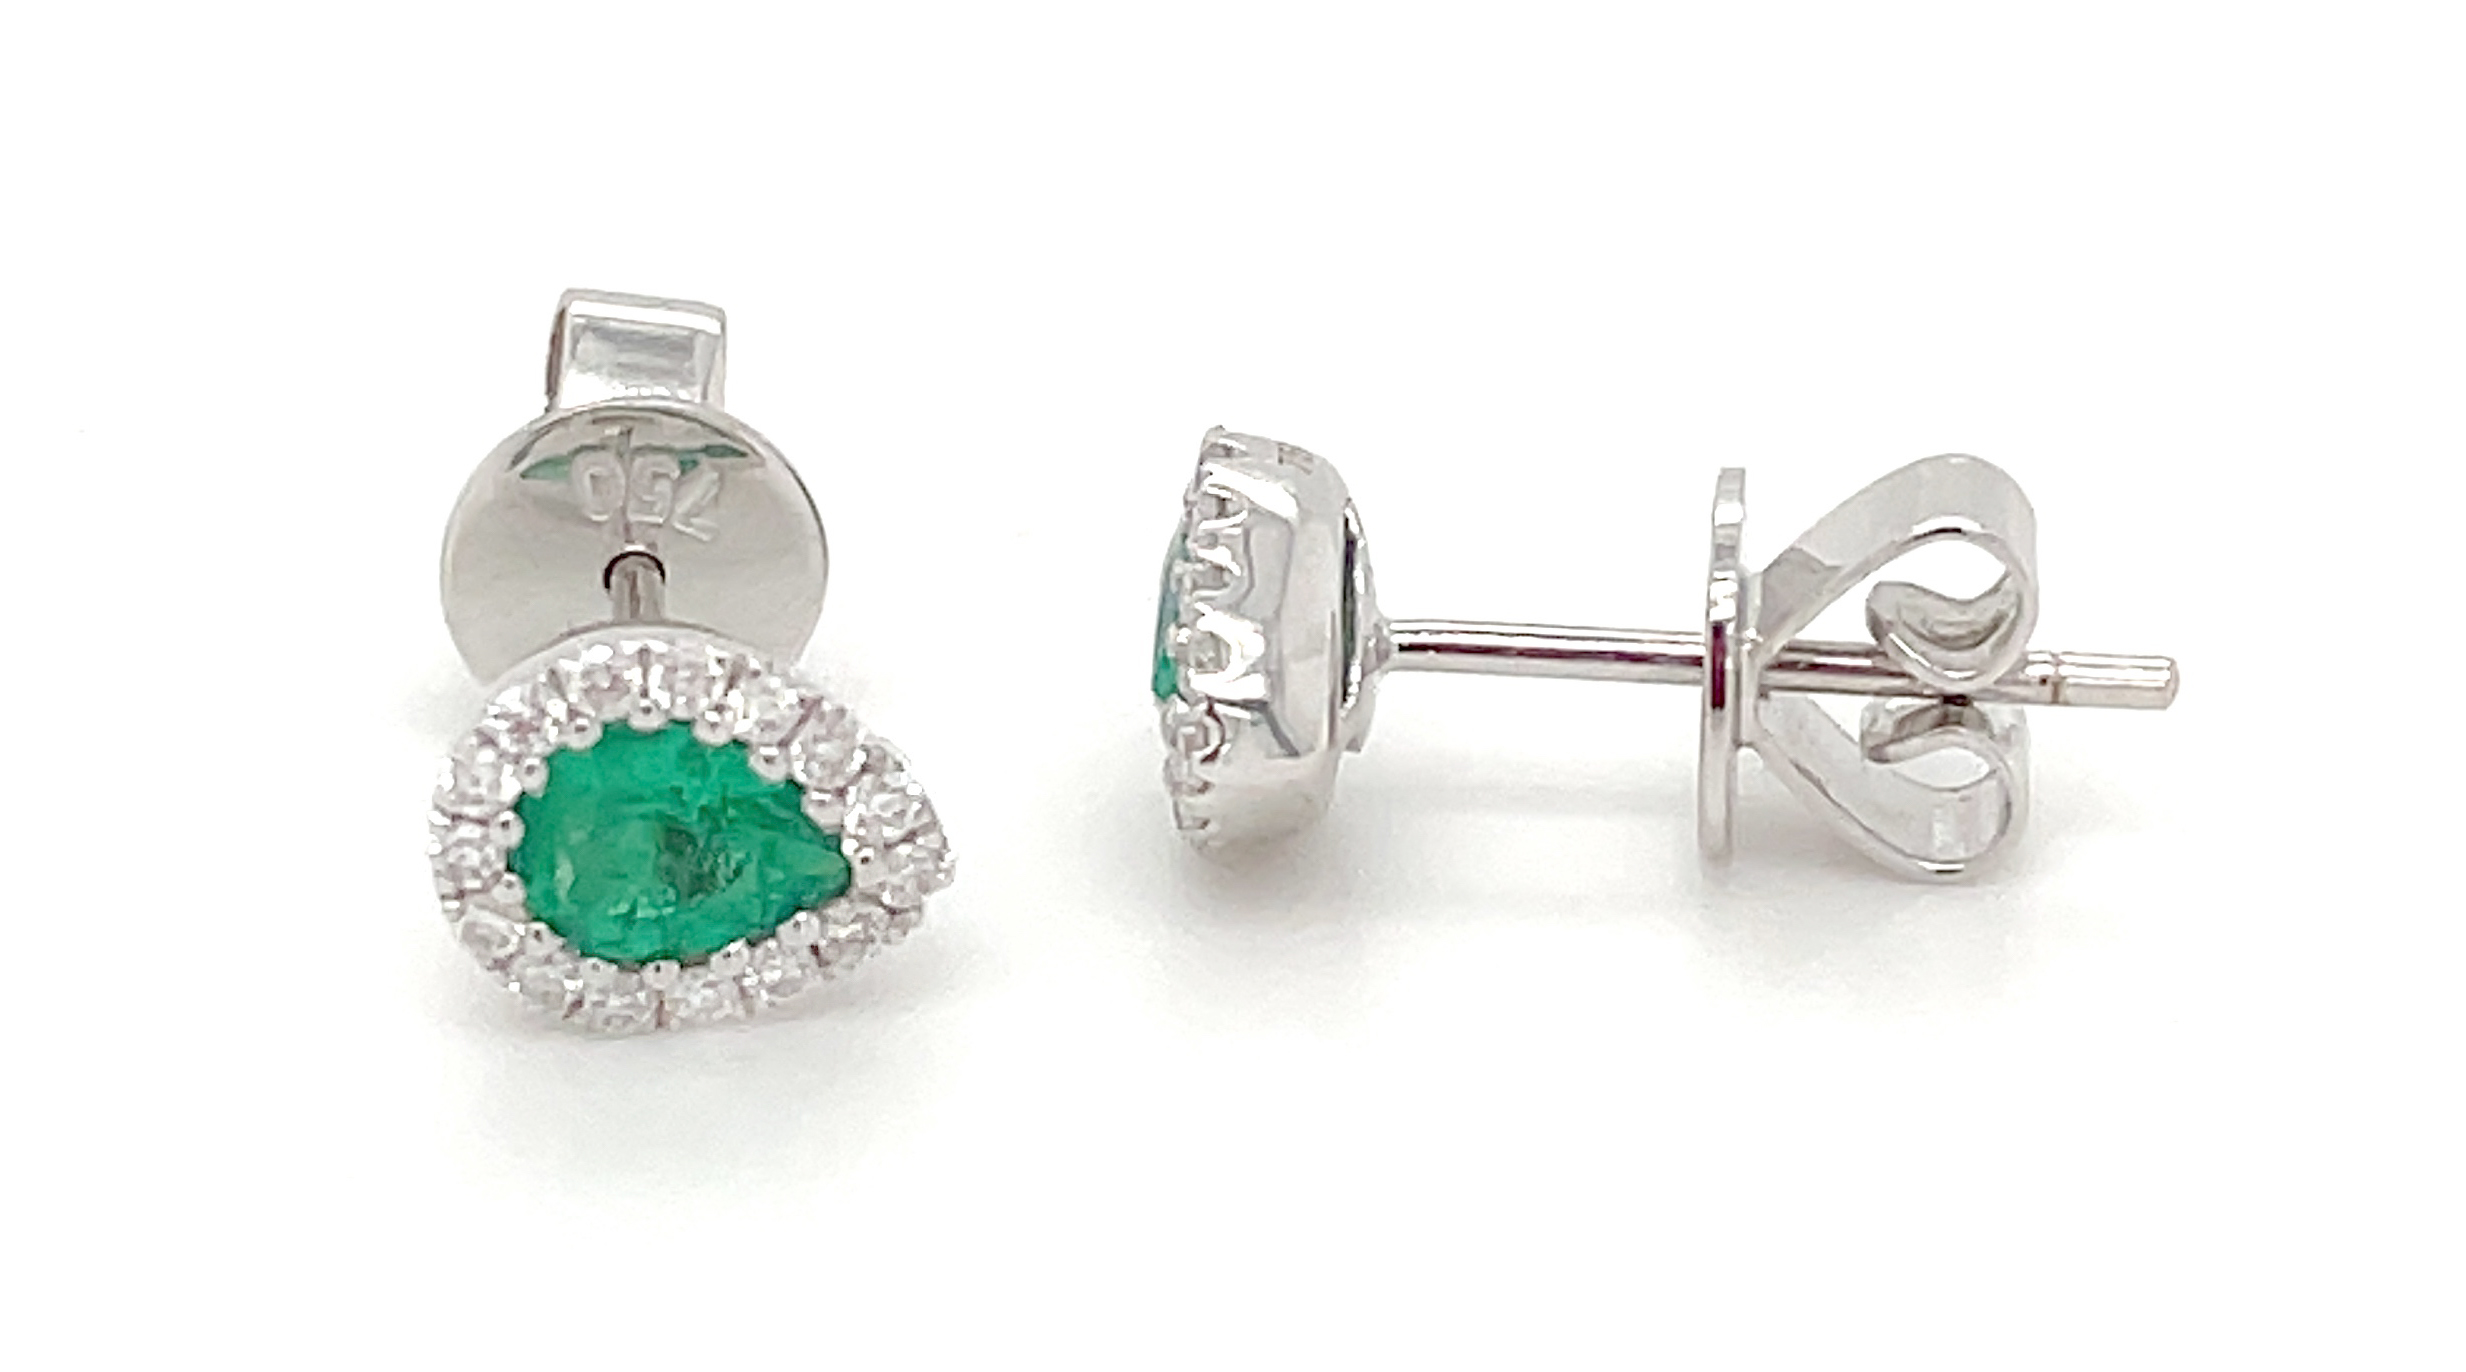 18k White Gold Stud Earrings With Emerald & Diamond Cluster